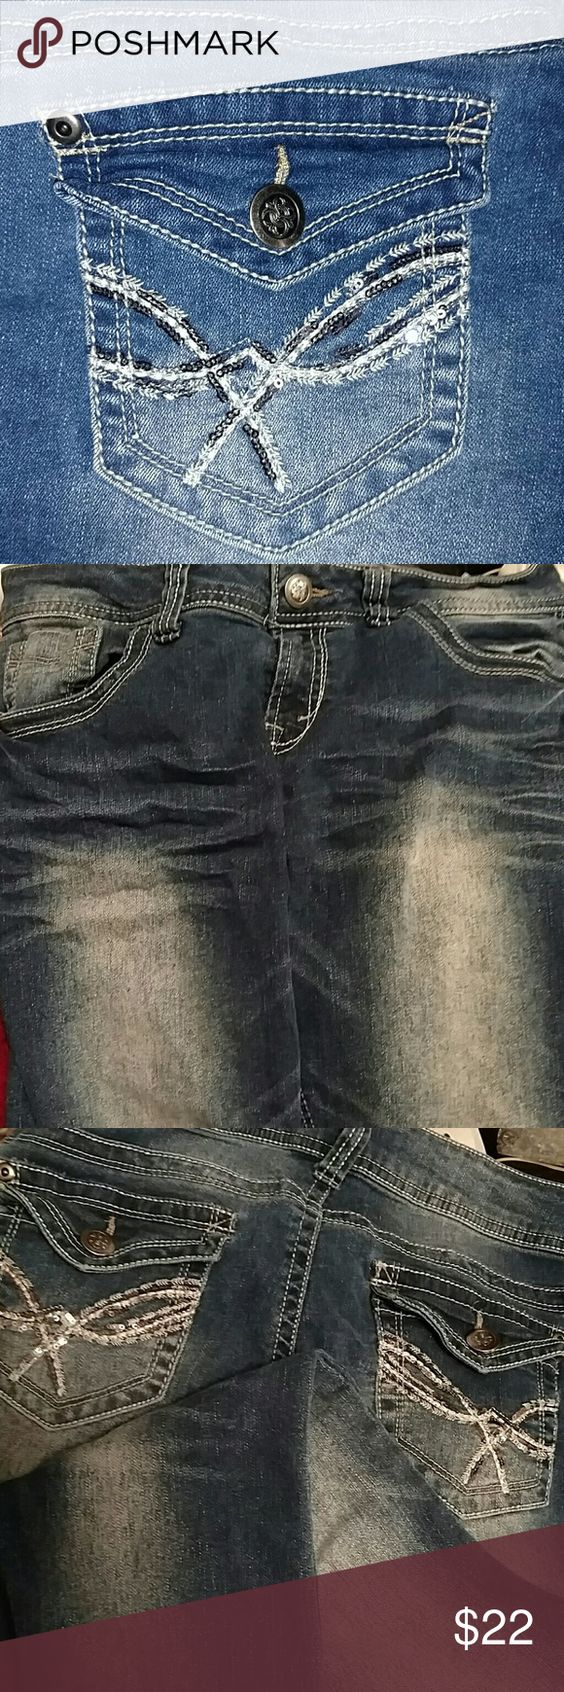 """Trendy Jeans w/ Dark & Light Wash Design as Shown Pic #3 shows Contrast of Jeans Colors Excellent Condition !! Cuffs Flawless Jeans have """"whisker"""" design on legs More pics if requested Sequin Design on Pockets nobo Jeans Boot Cut"""